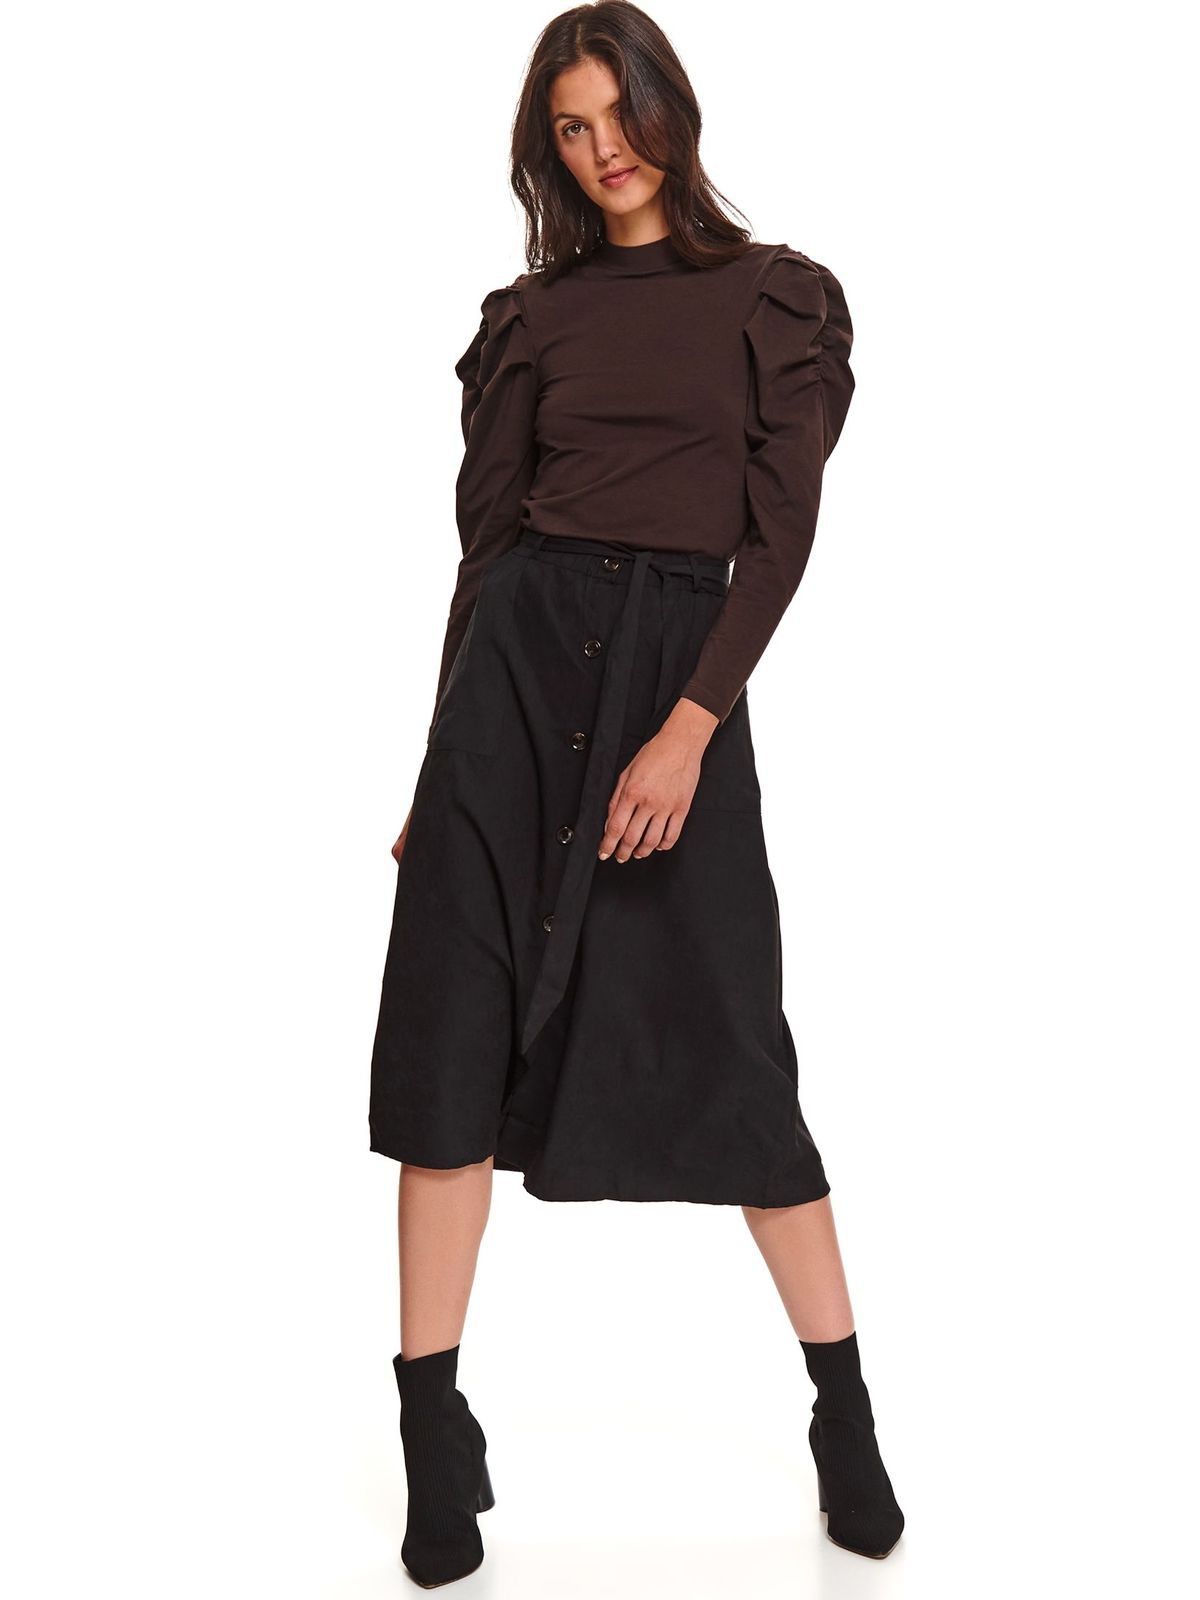 Black skirt casual midi cloche with pockets